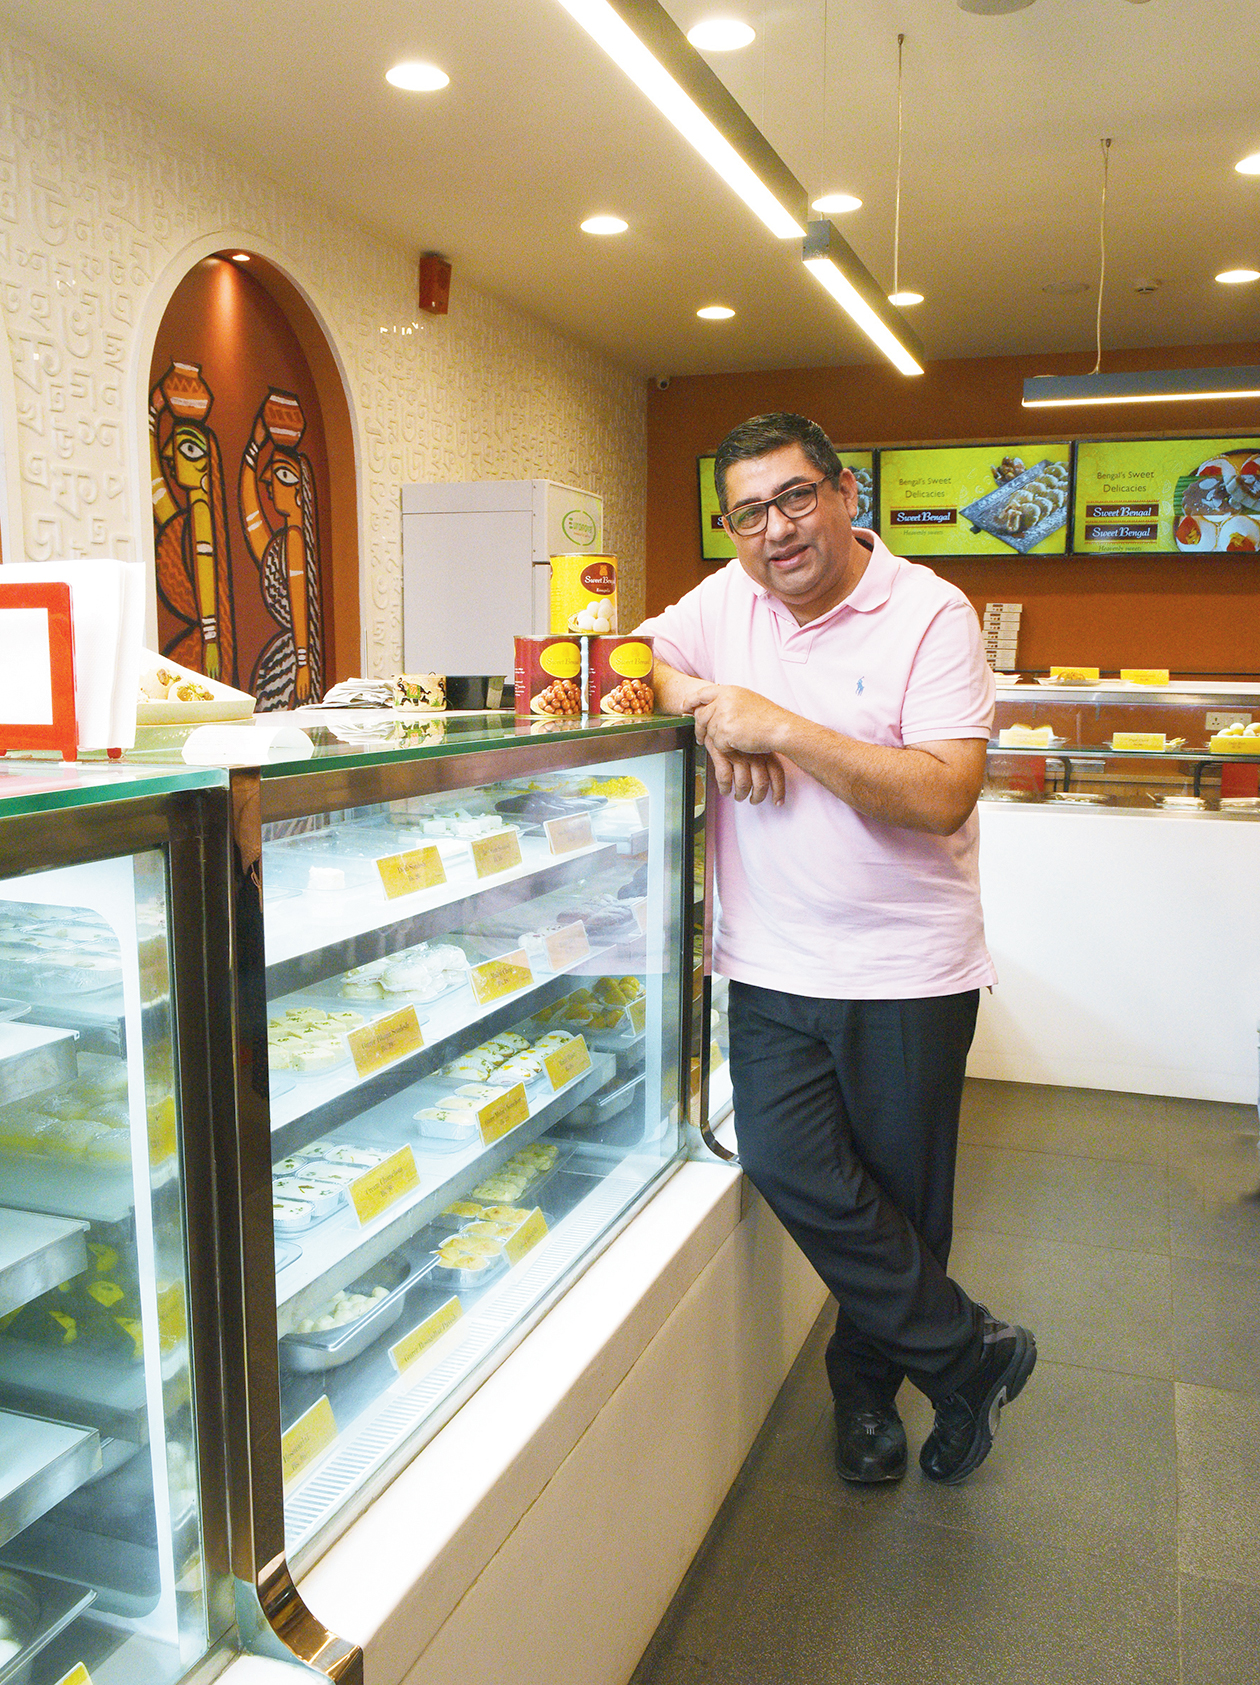 Anjan Chatterjee at the Southern Avenue outlet of Sweet Bengal.